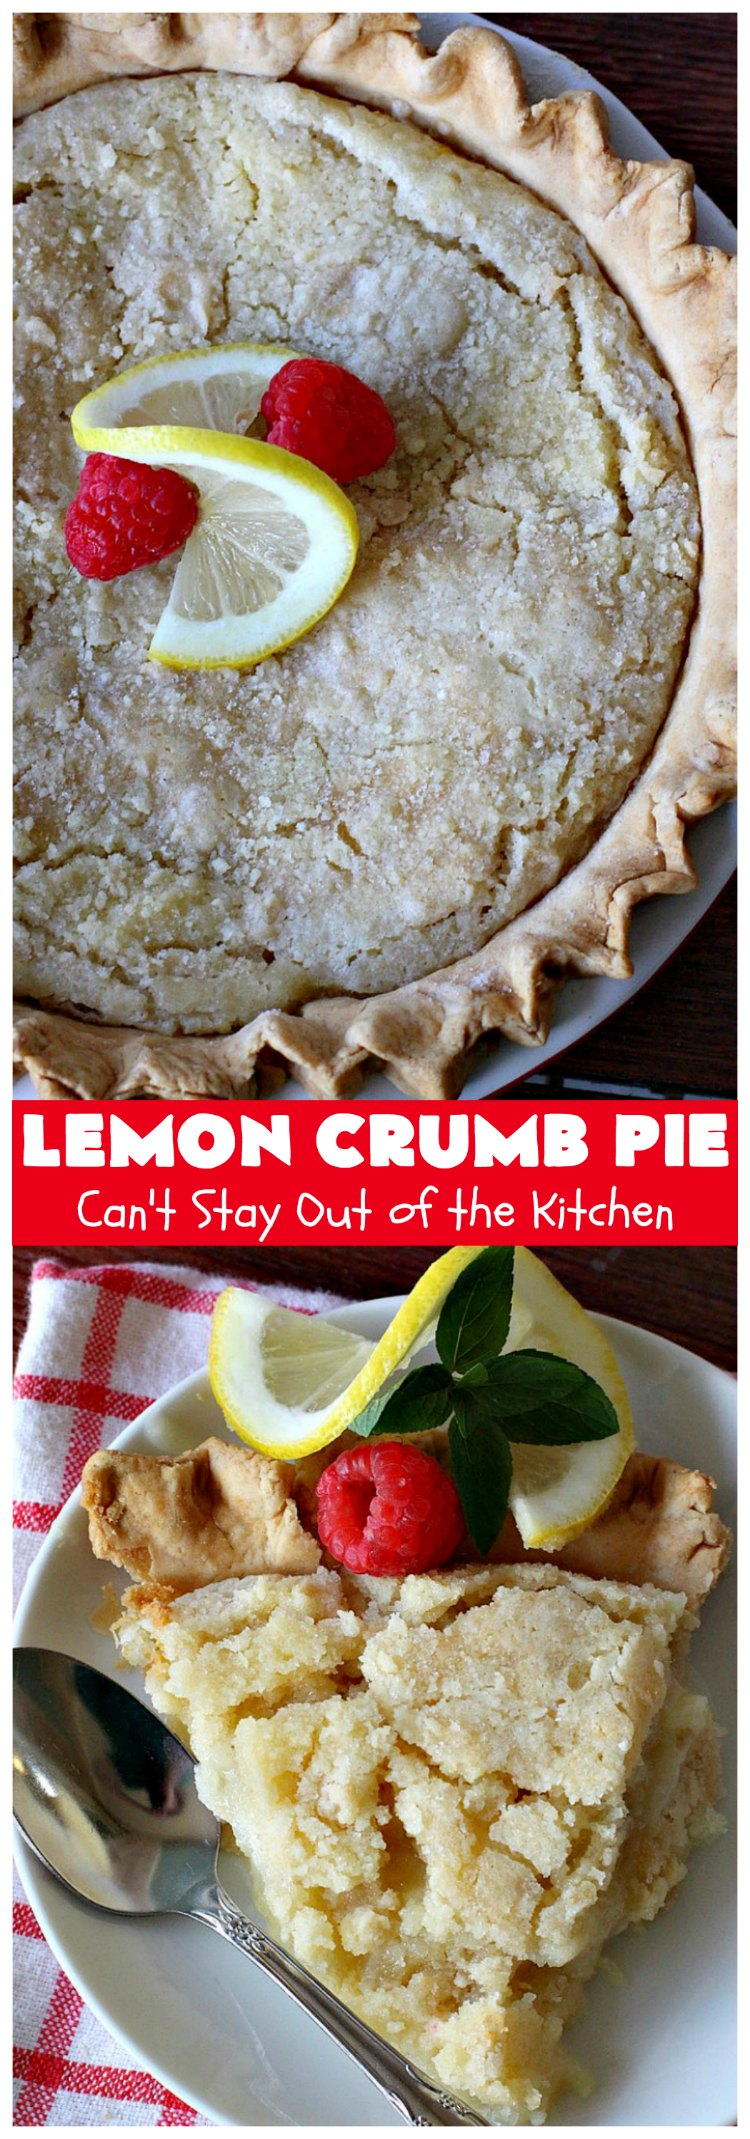 Lemon Crumb Pie   Can't Stay Out of the Kitchen